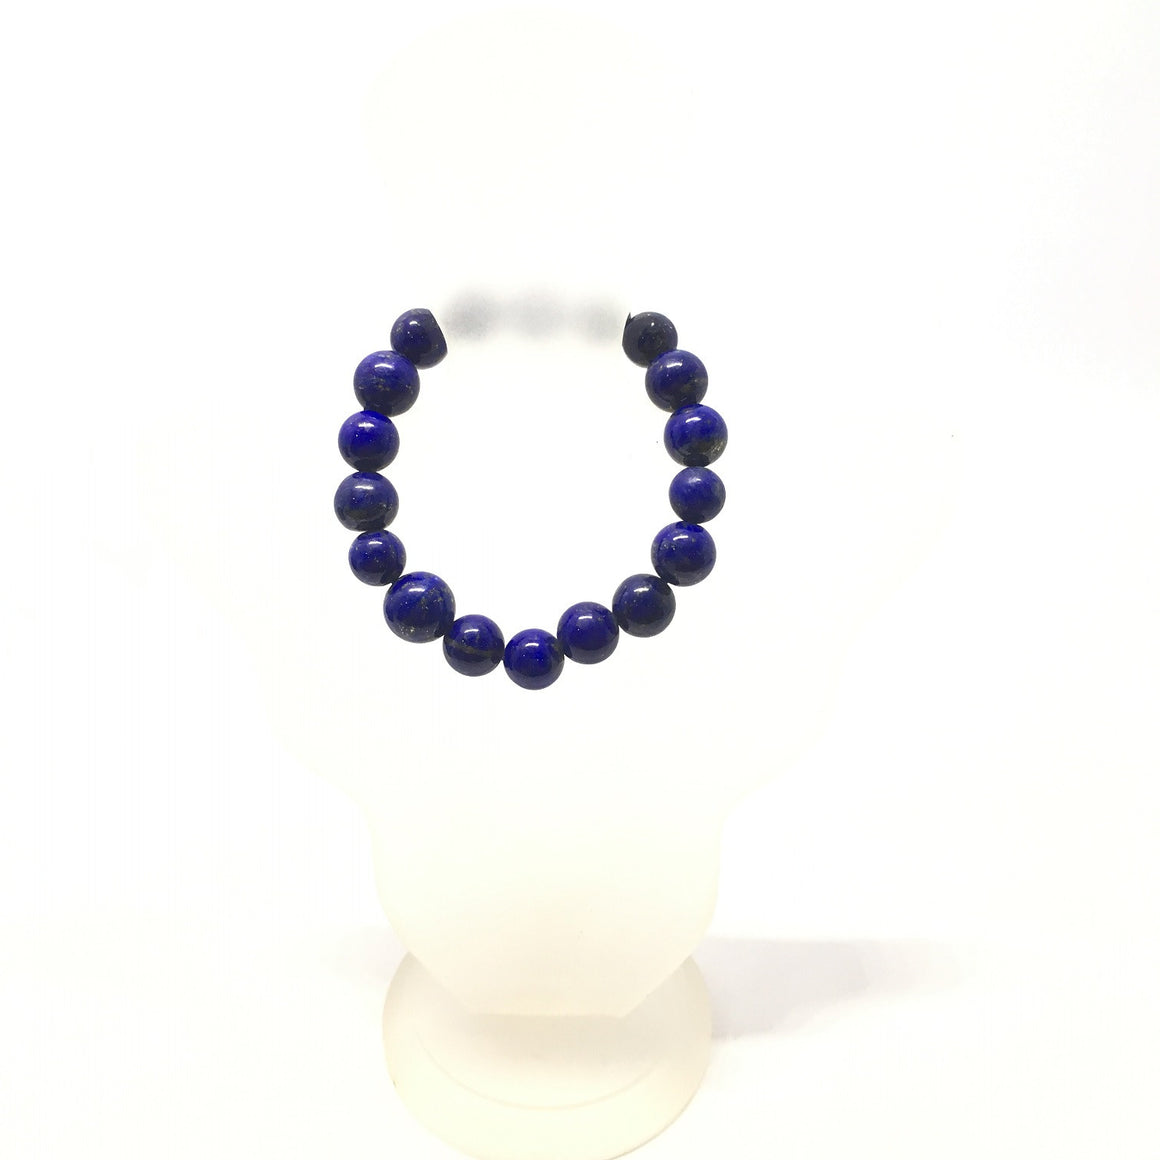 63.30 Carat , 18 Round Beads Handmade Bracelet With Elastic Stretch,Grade AAA Quality Beads